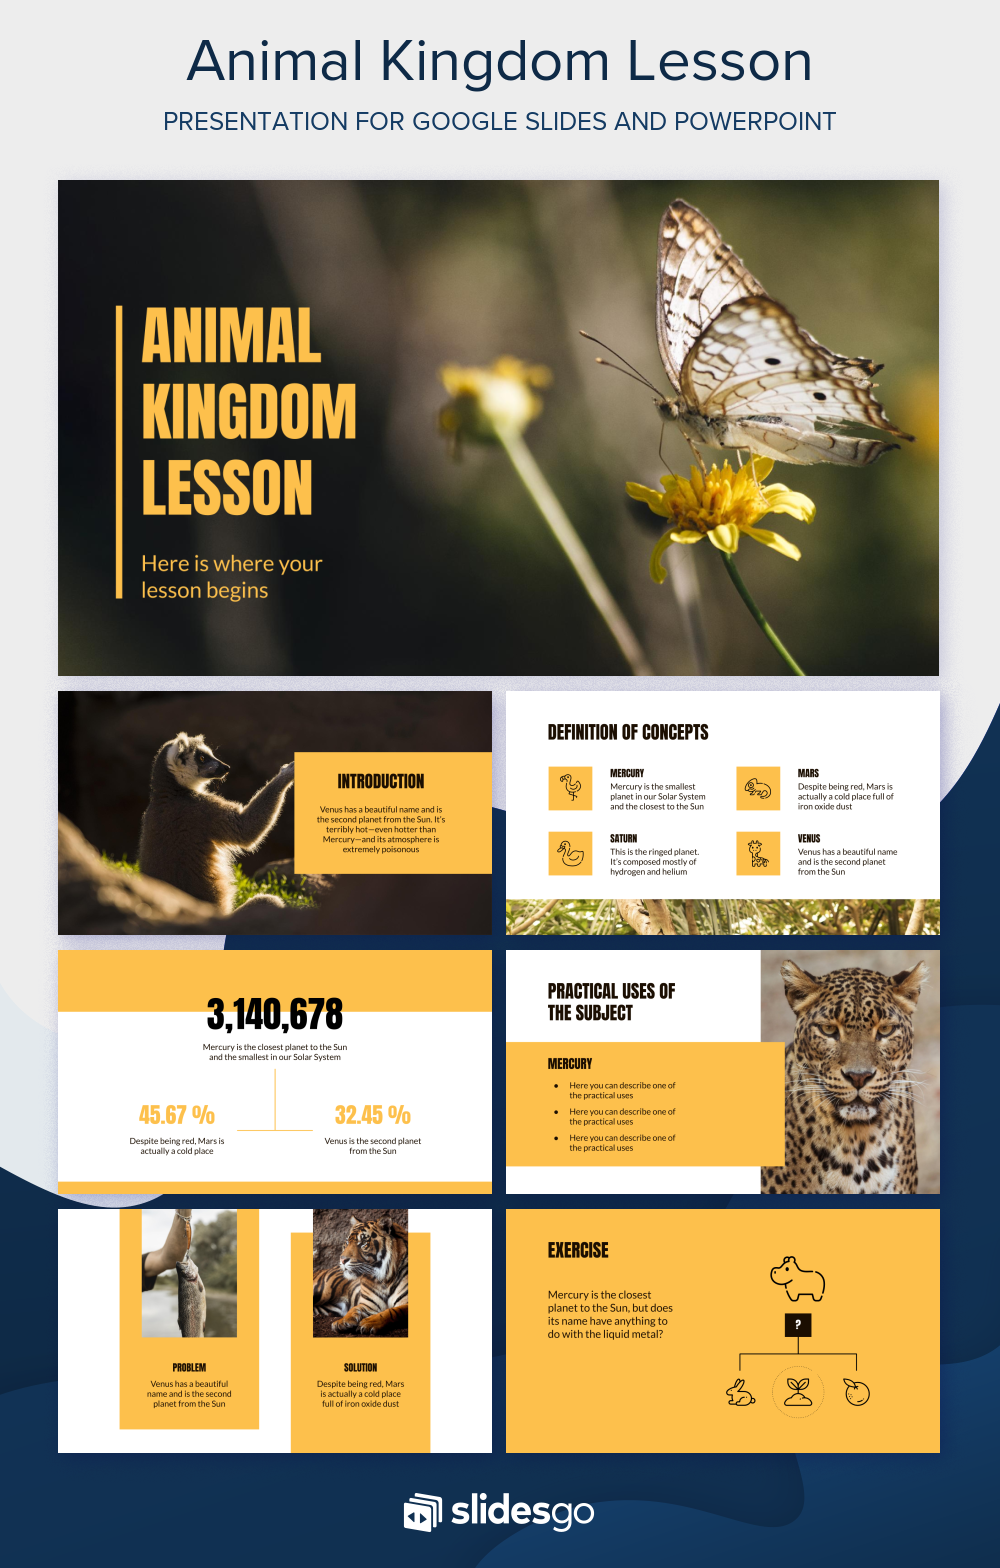 Animal Kingdom Lesson Presentation Free Google Slides